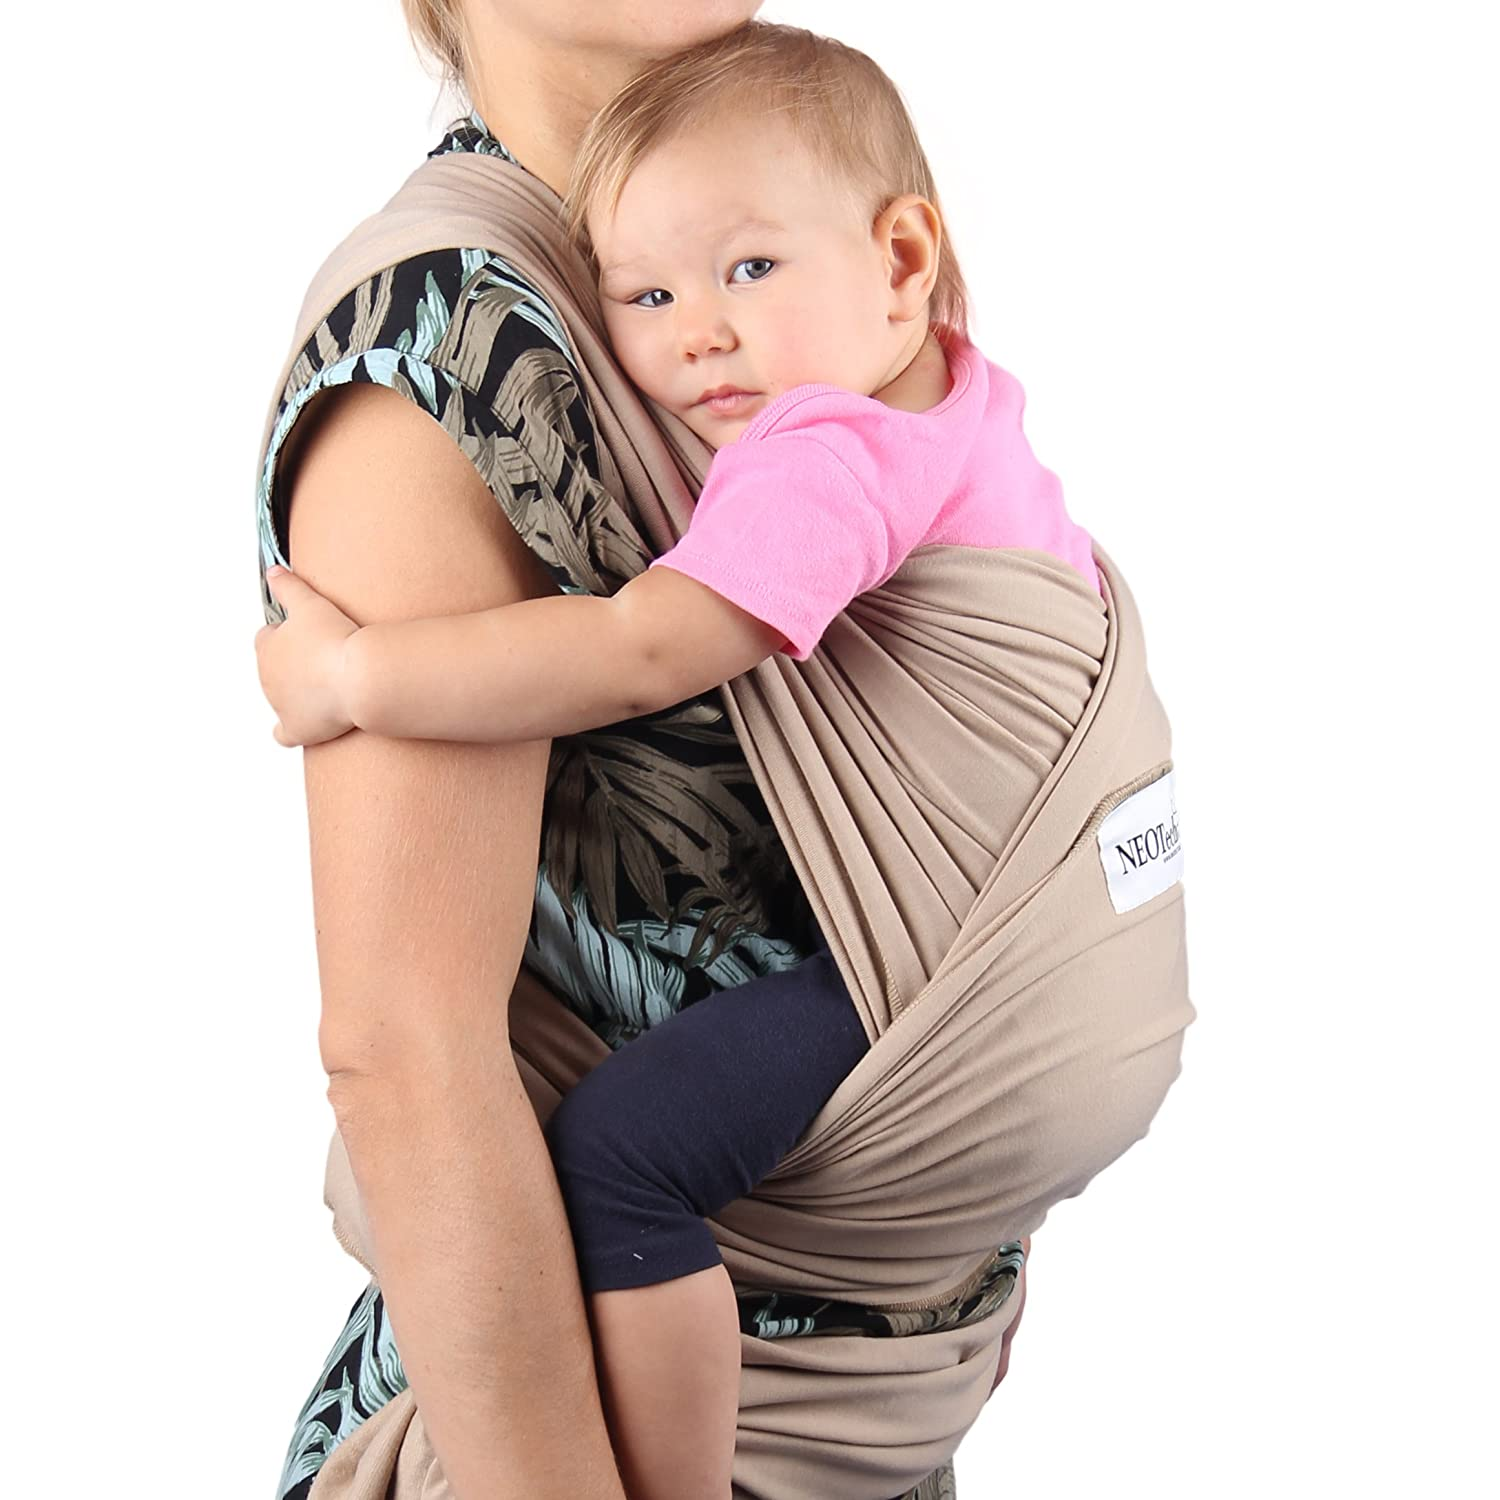 Neotech Care Baby Wrap Carrier - Cotton - For Infant, Child, Toddler - Light Brown BW001 Light Brown